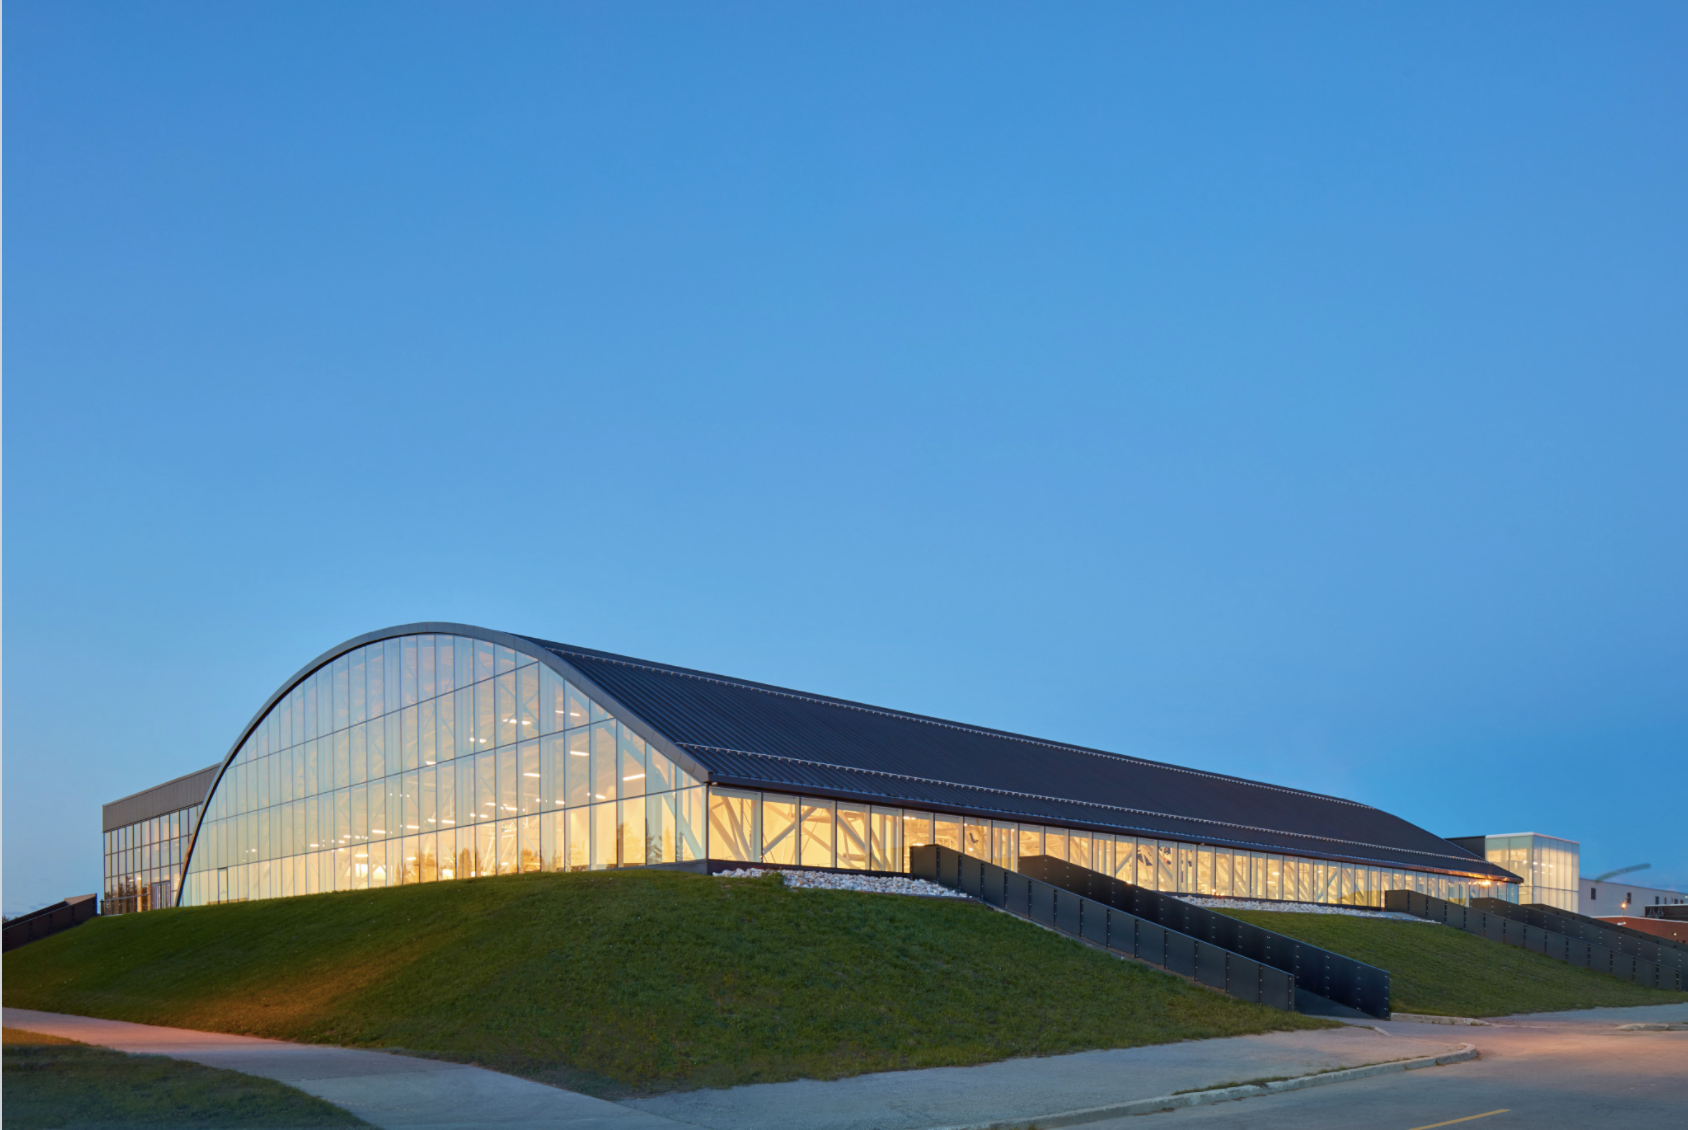 Instead of demolishing and replacing a 1970s arena as originally mandated, MJMA advocated for adaptively reusing it. Glazing was added to the sides and end of the barrel-vaulted volume, maintaining its structural integrity while bringing daylight to the interior. Photo by Shai Gil